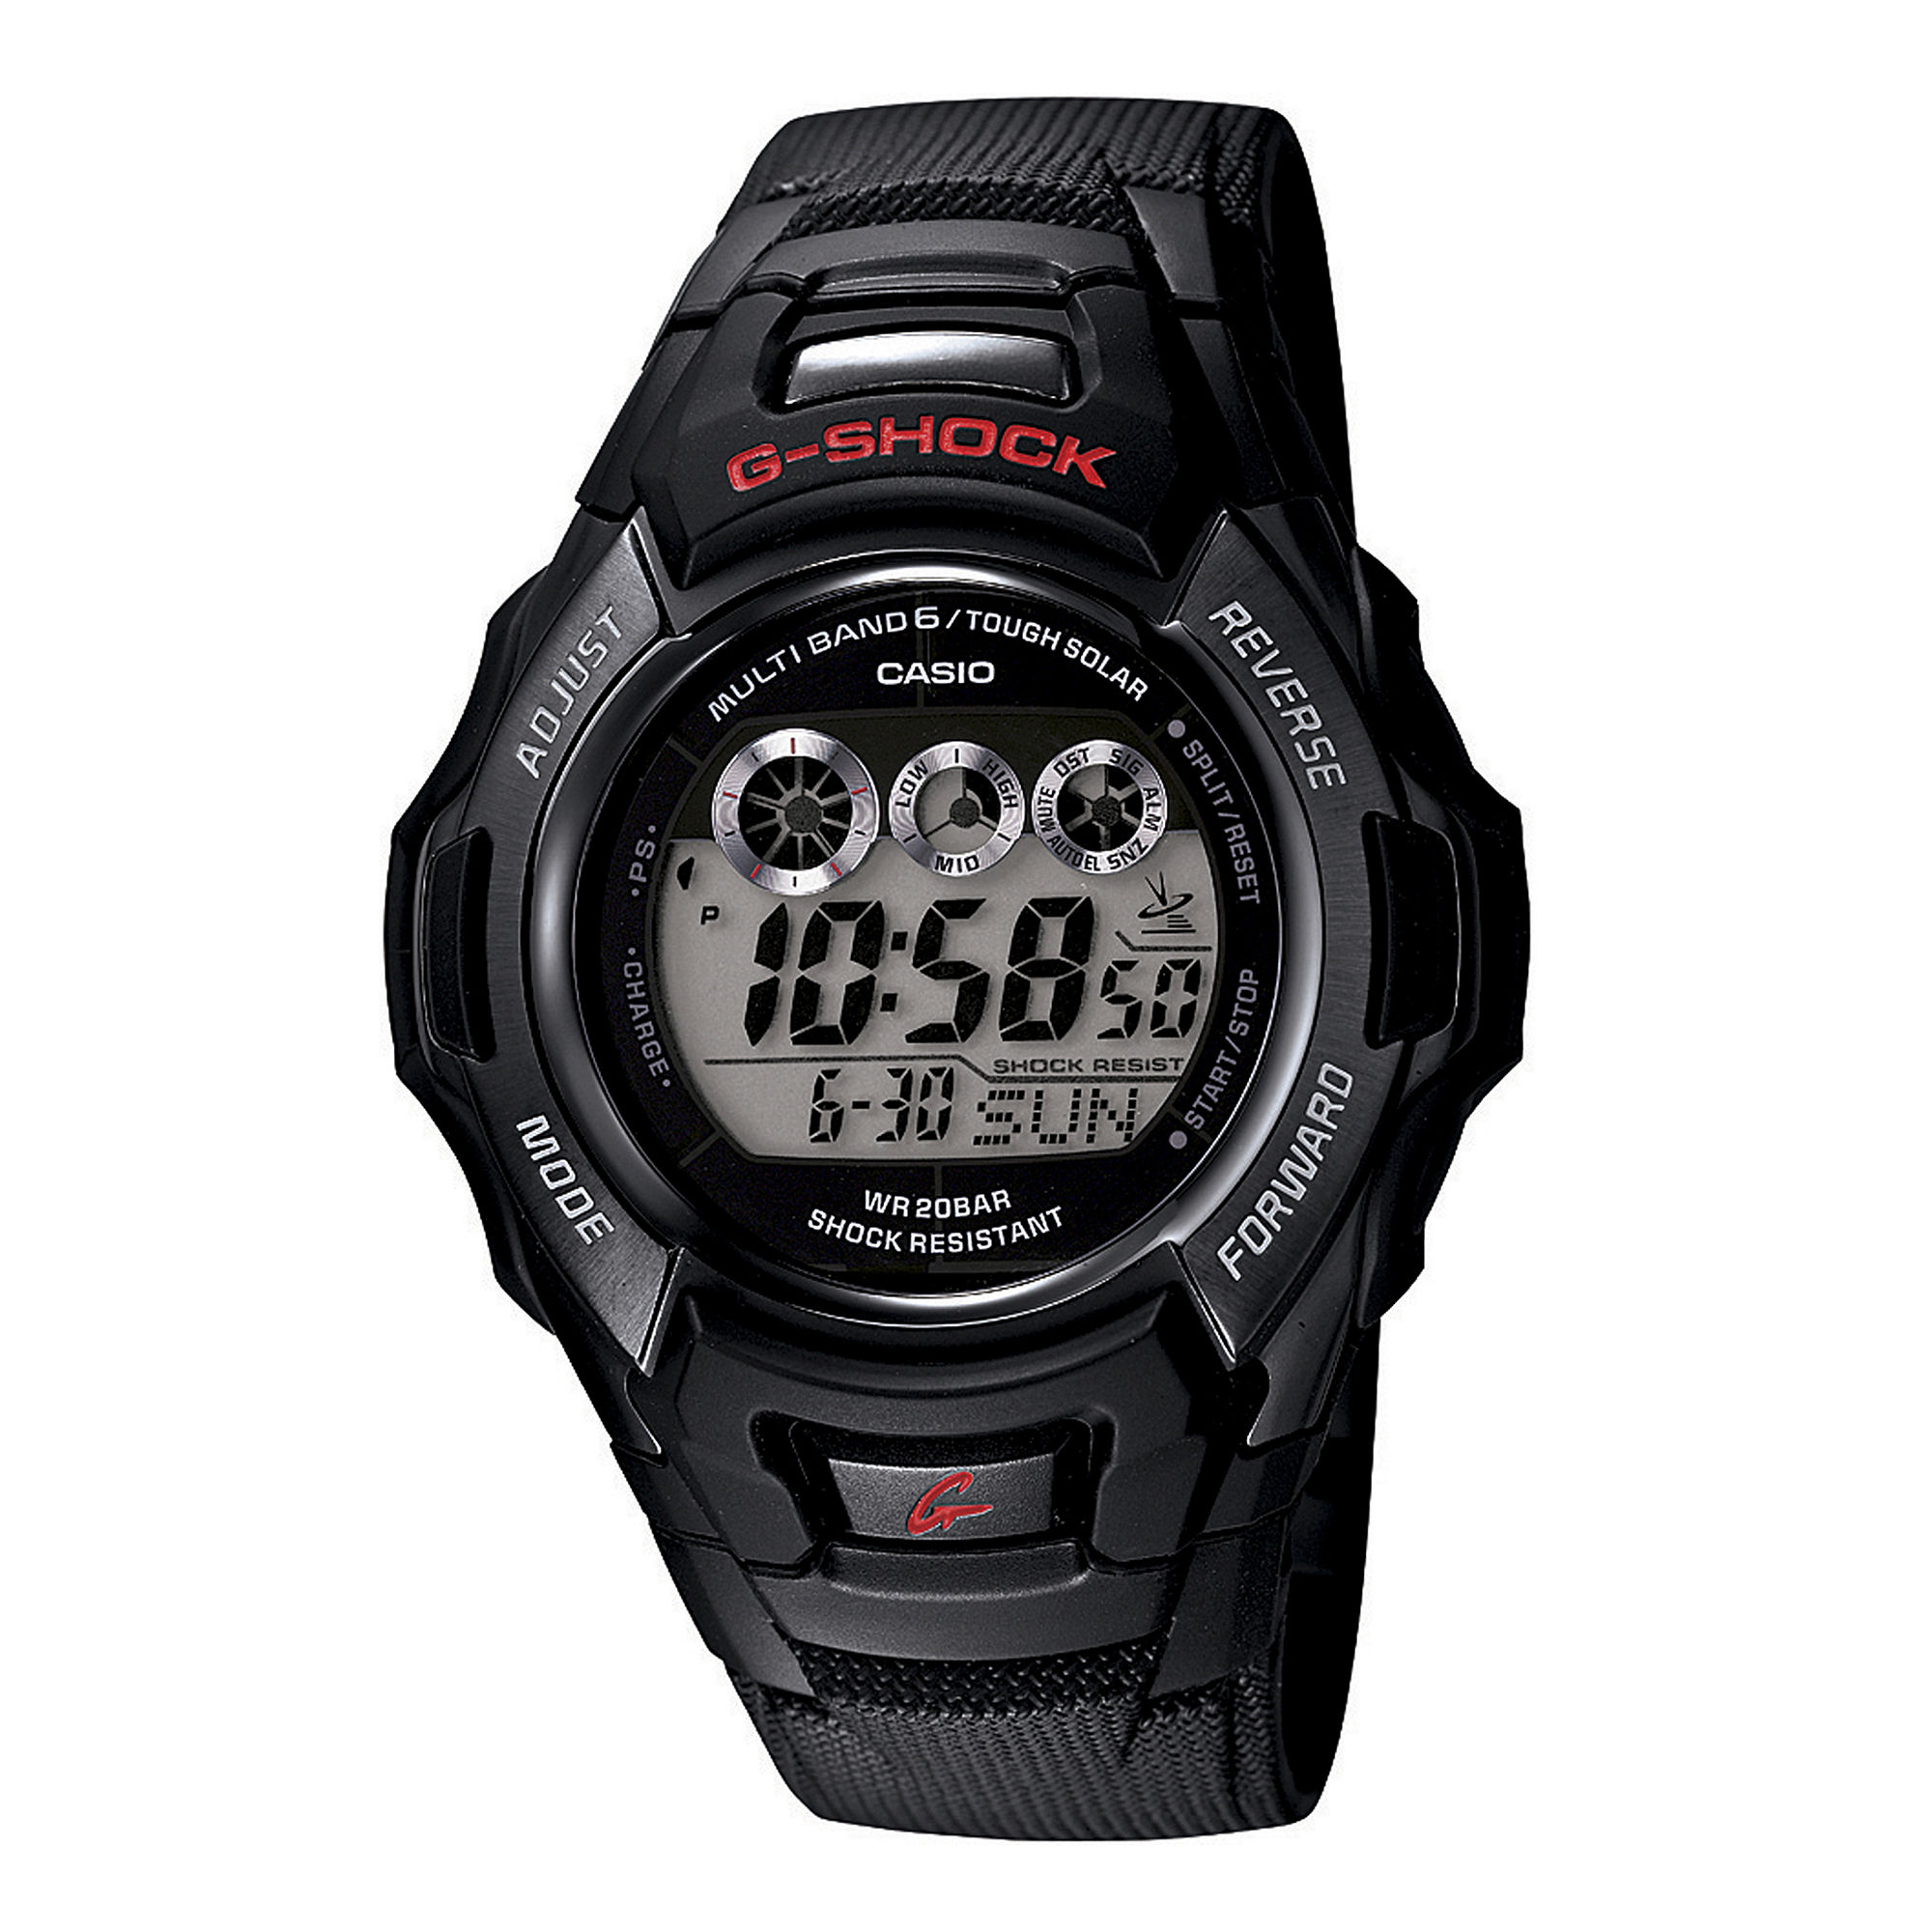 Casio G-Shock Tough Solar Mens Atomic Timekeeping Digital Sport Watch GWM530A-1